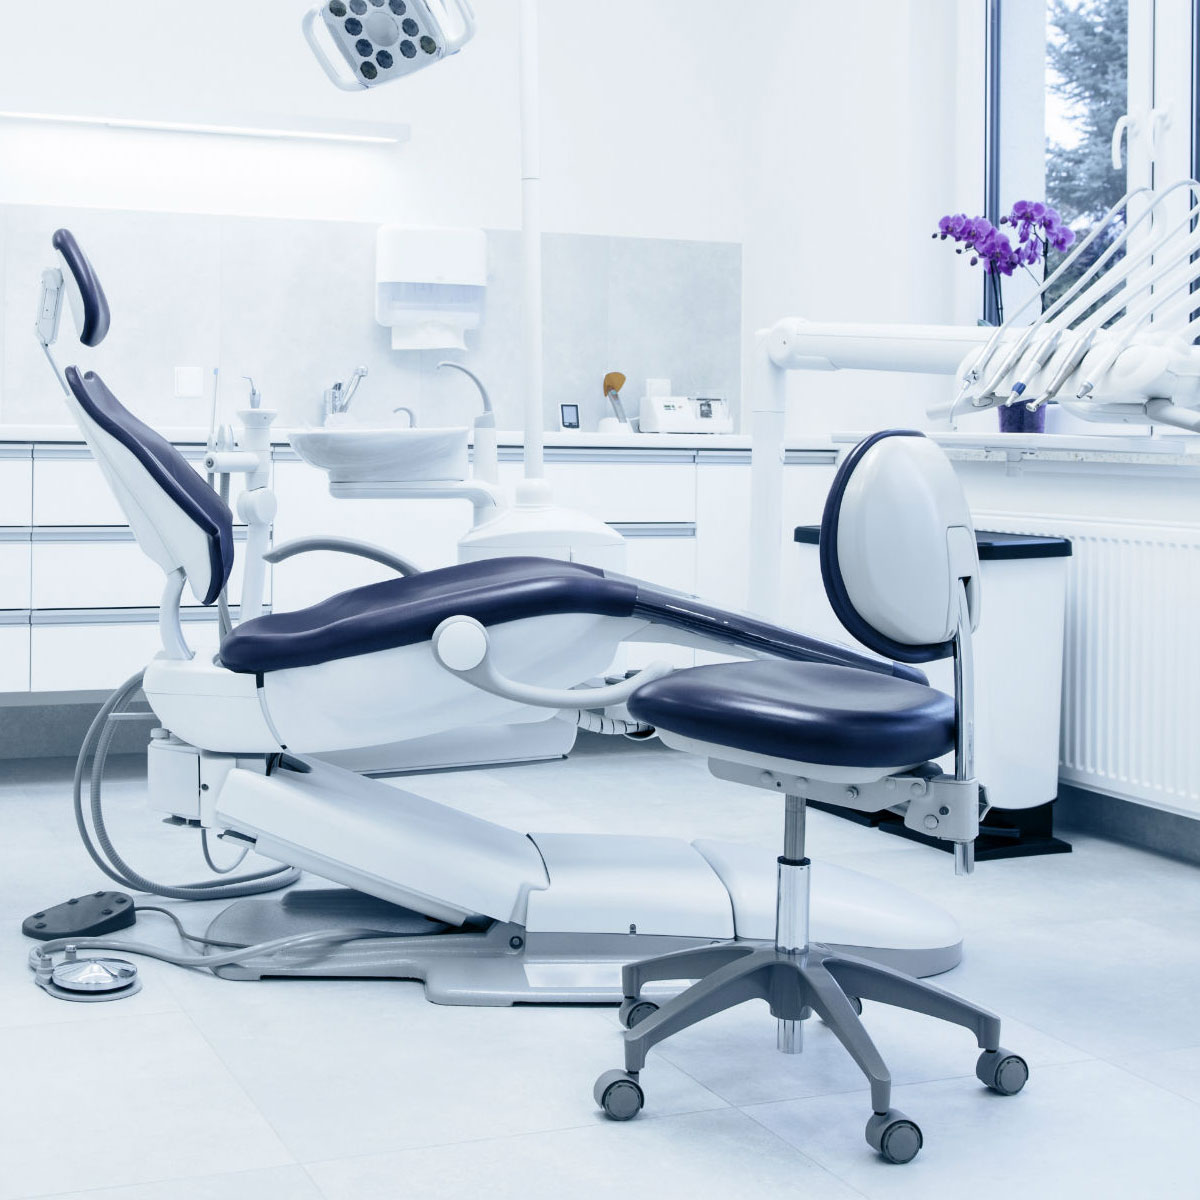 vienna dental care